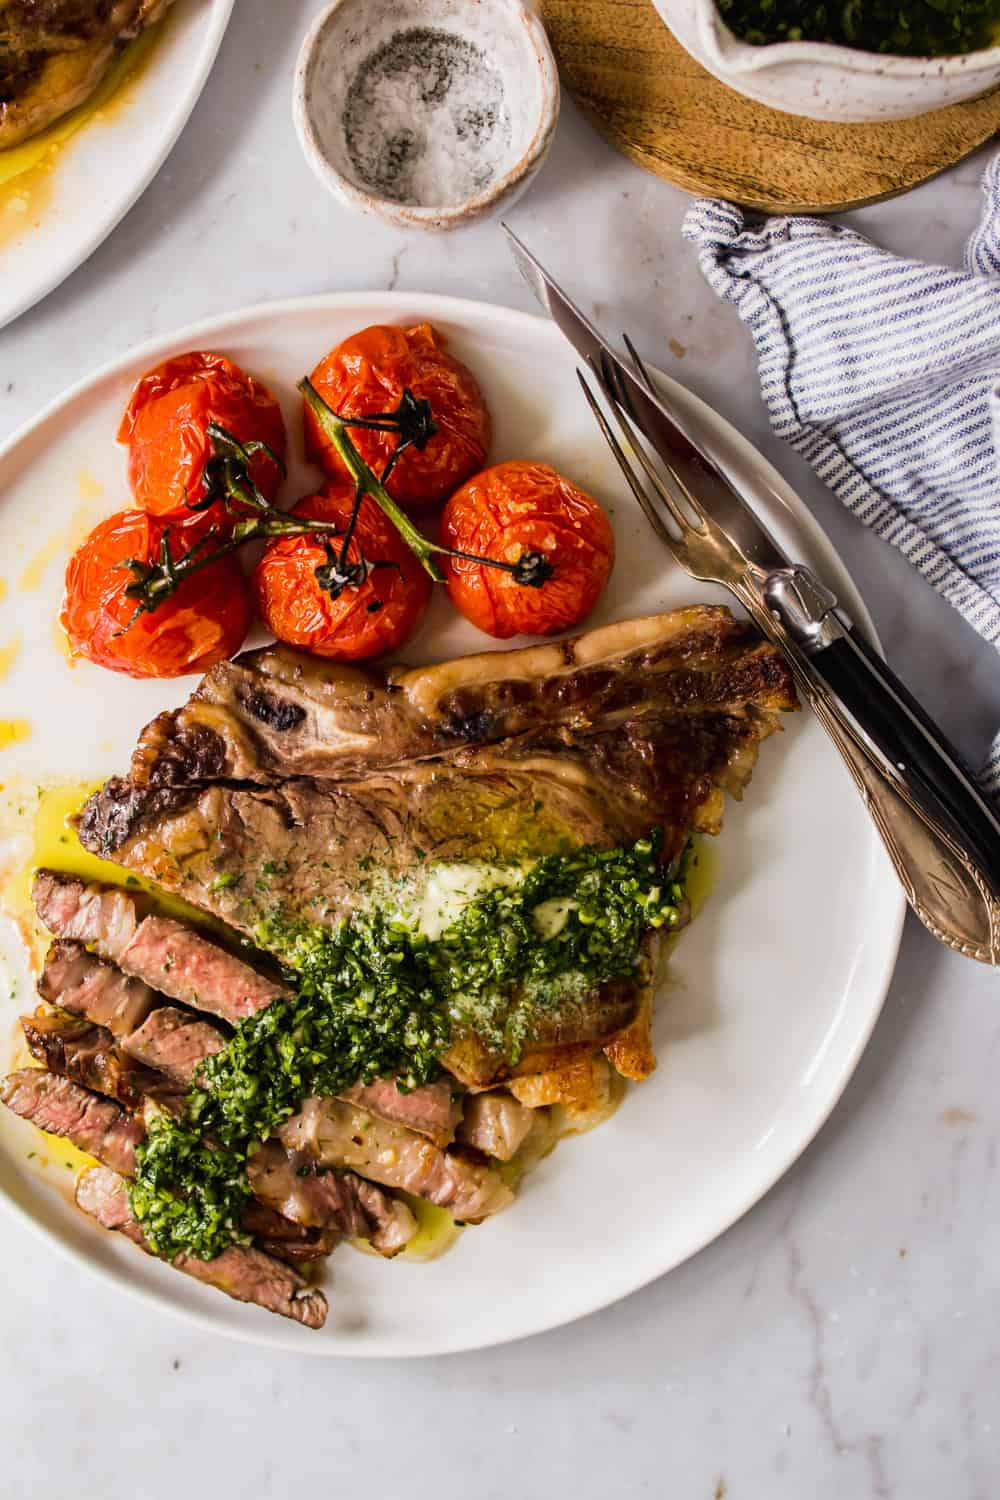 sliced steak on a white plate with green sauce on top and roasted tomatoes on the side